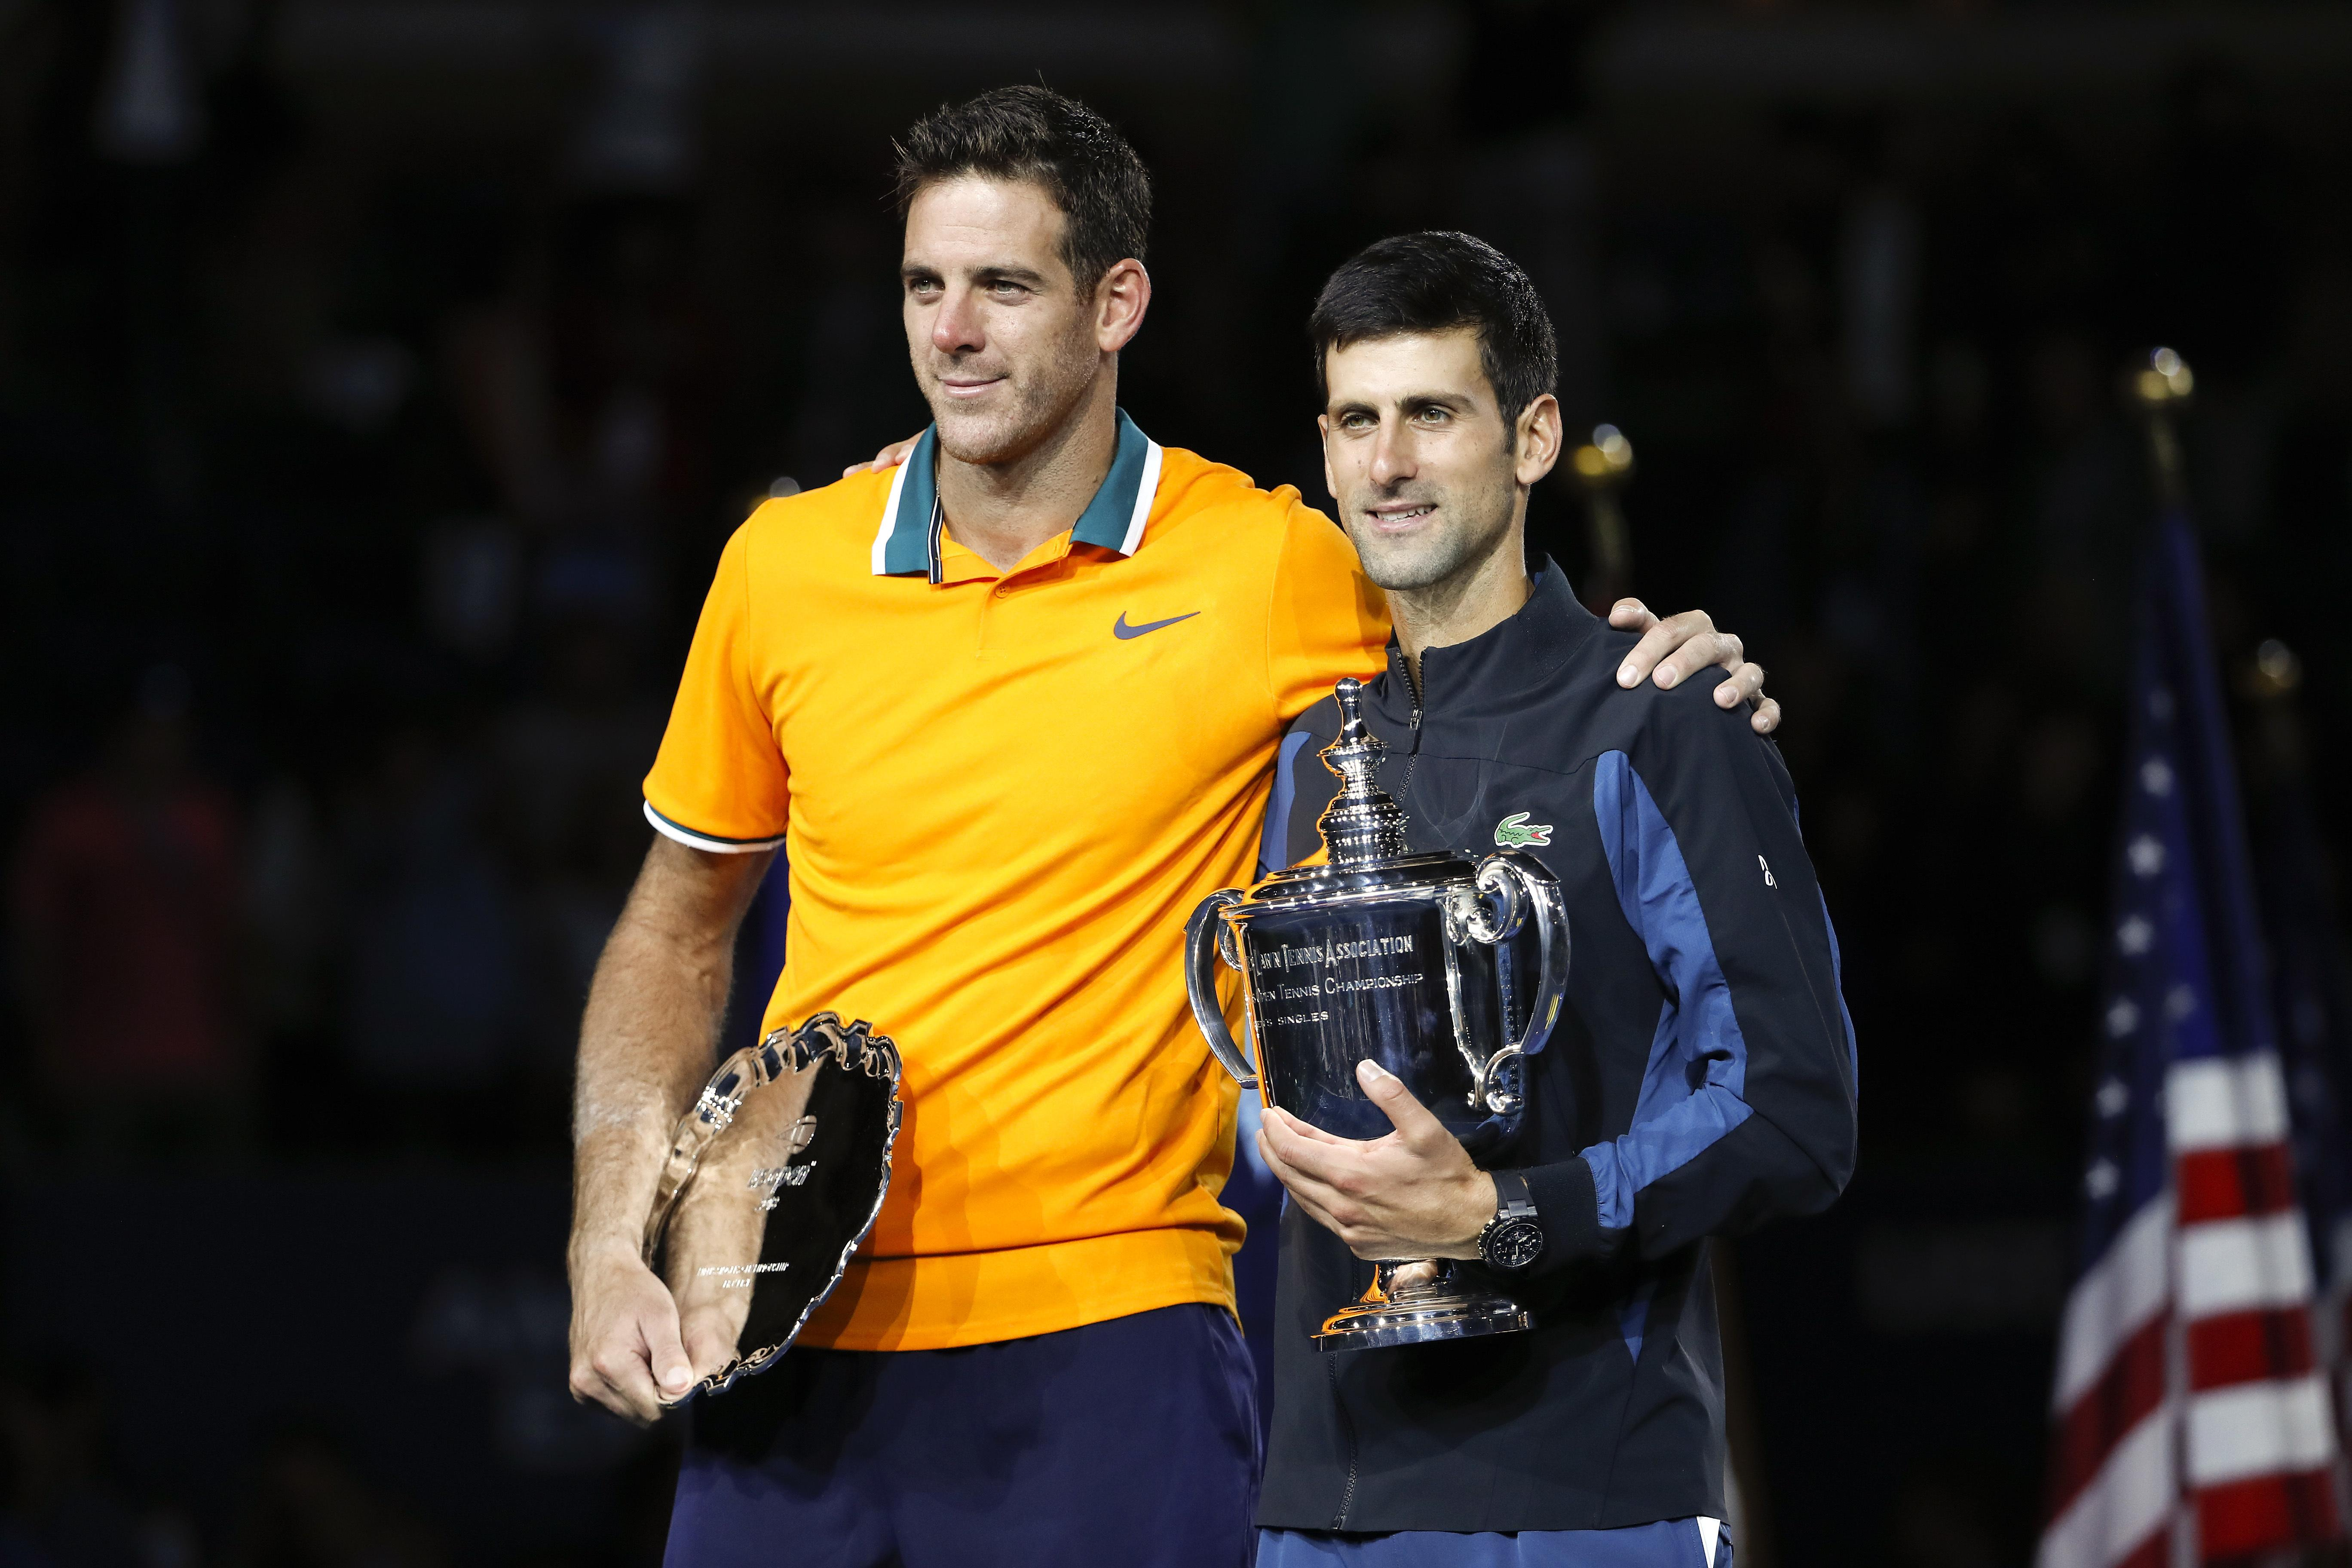 Juan Martin Del Potro was aiming for only his second Grand Slam win, following his 2009 US Open triumph